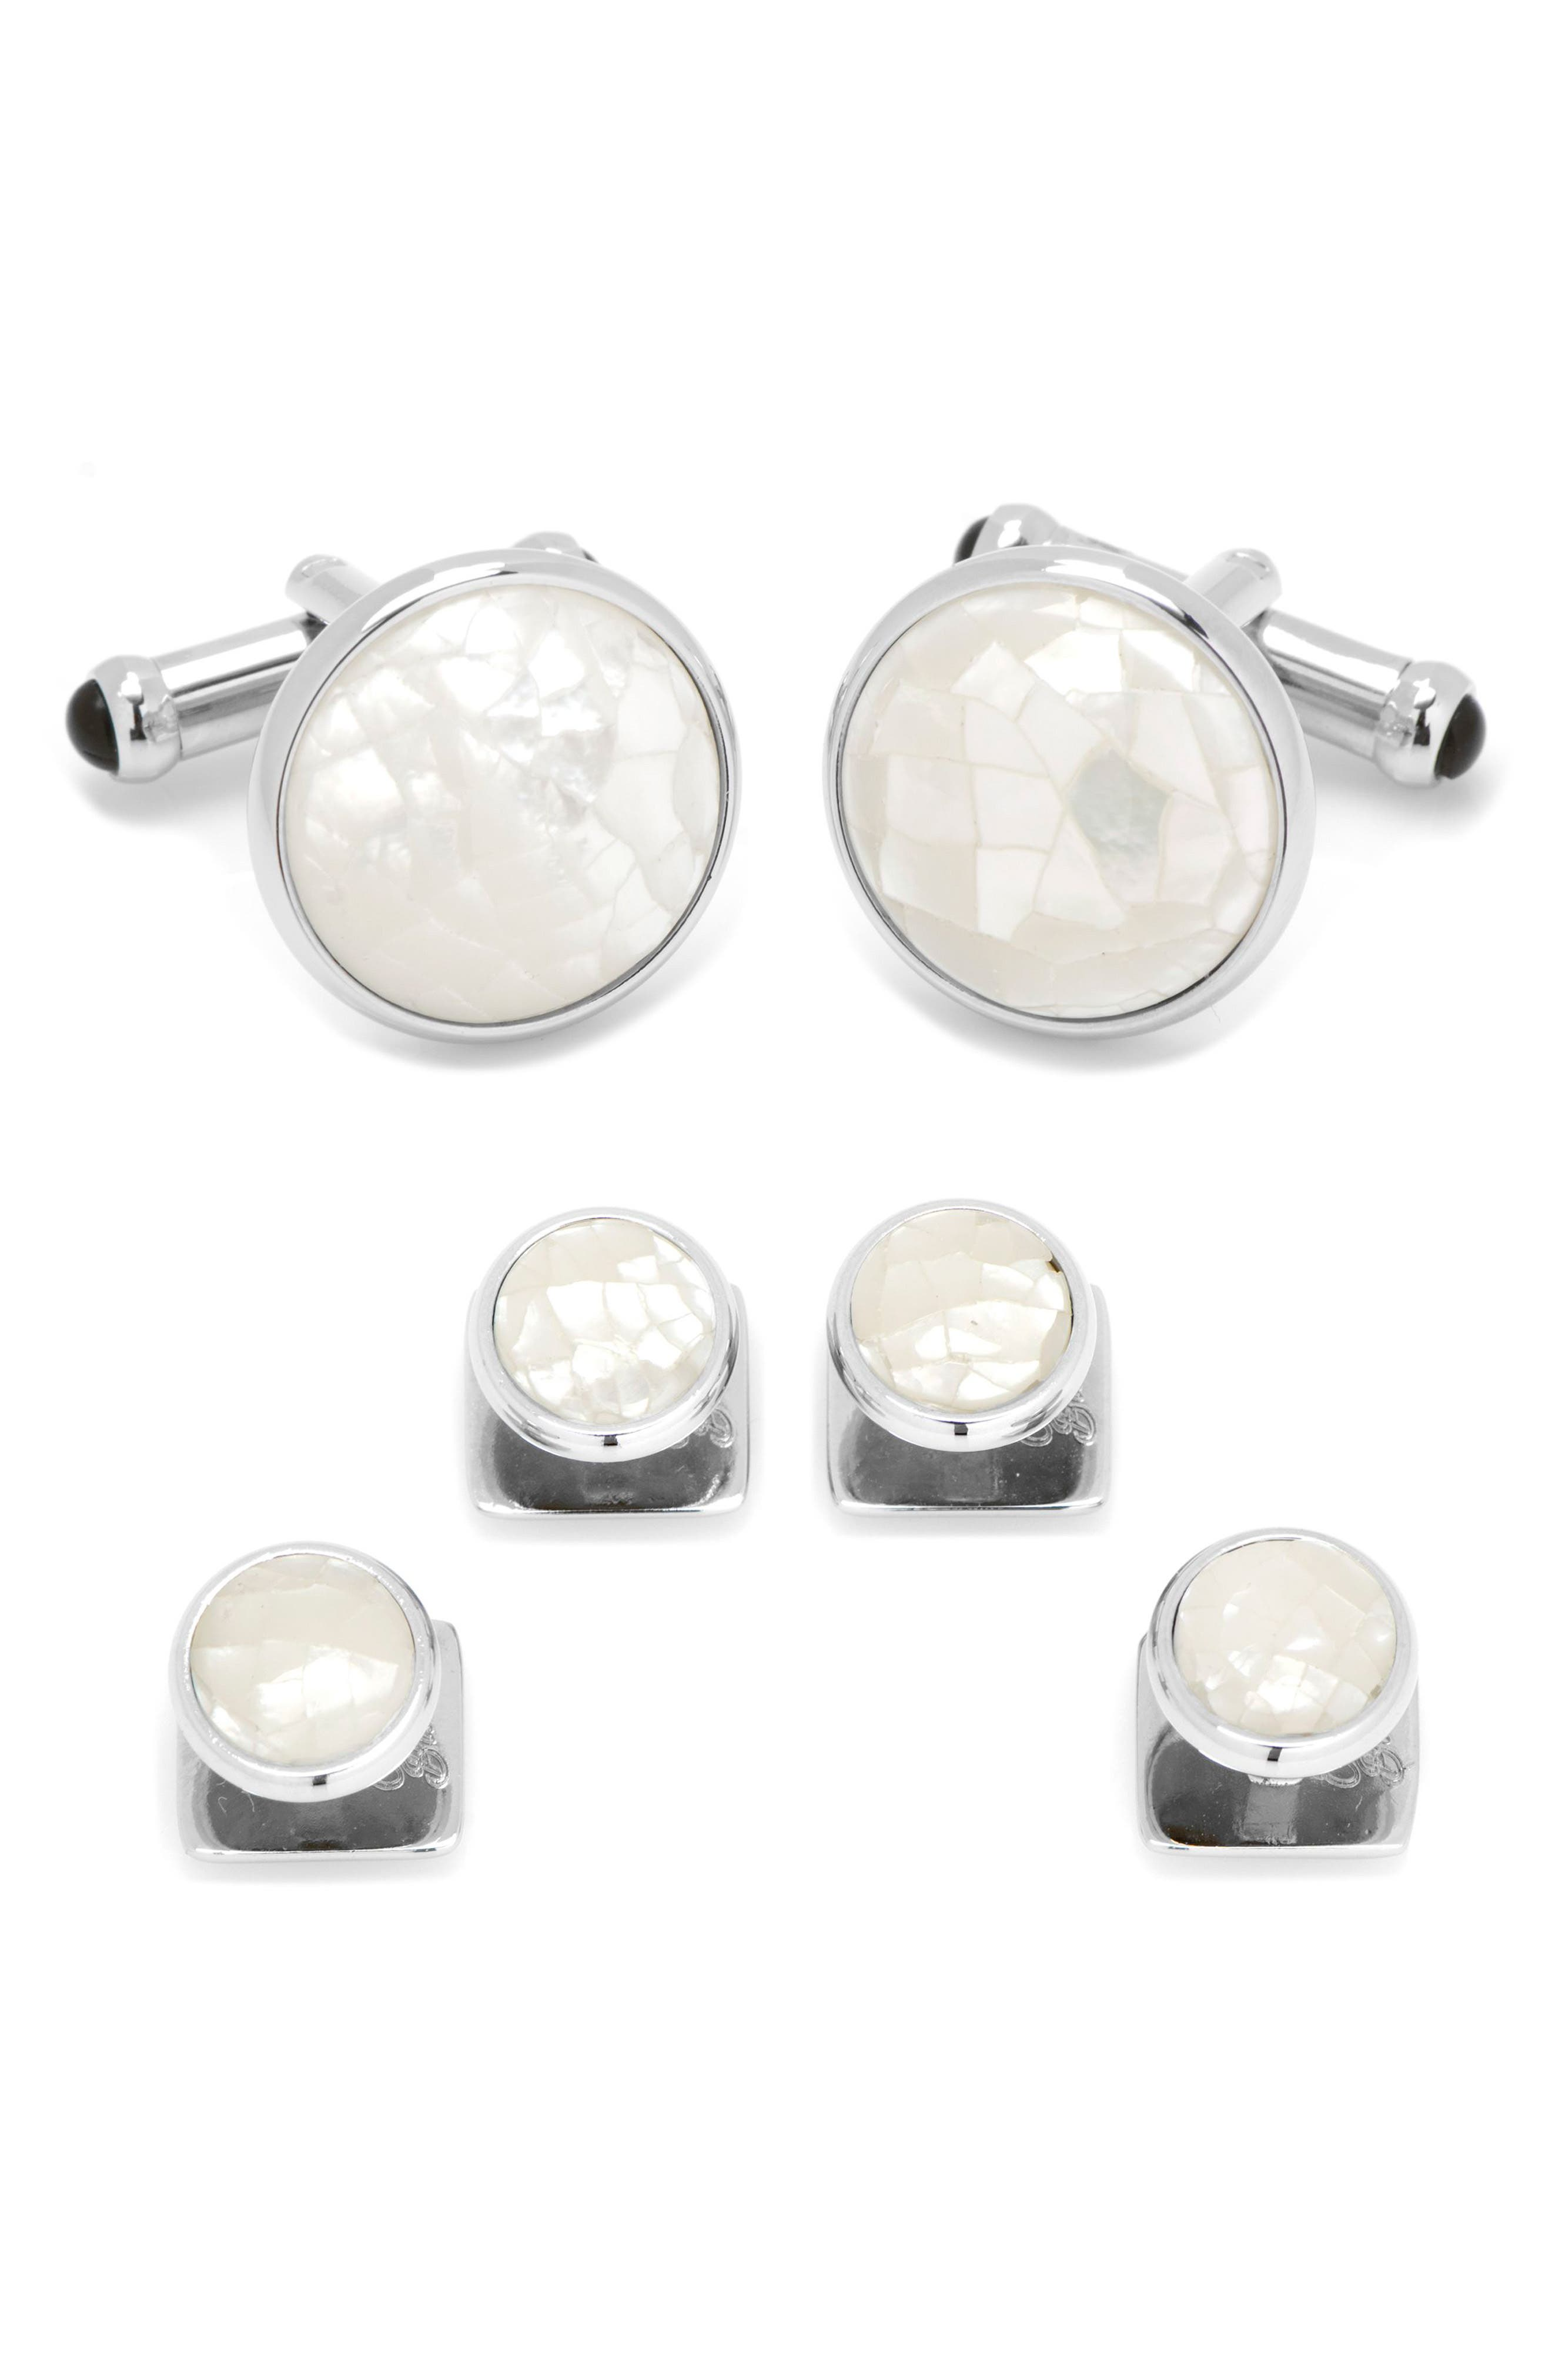 Mother-of-Pearl Cuff Link & Shirt Stud Set,                             Main thumbnail 1, color,                             Silver/ White